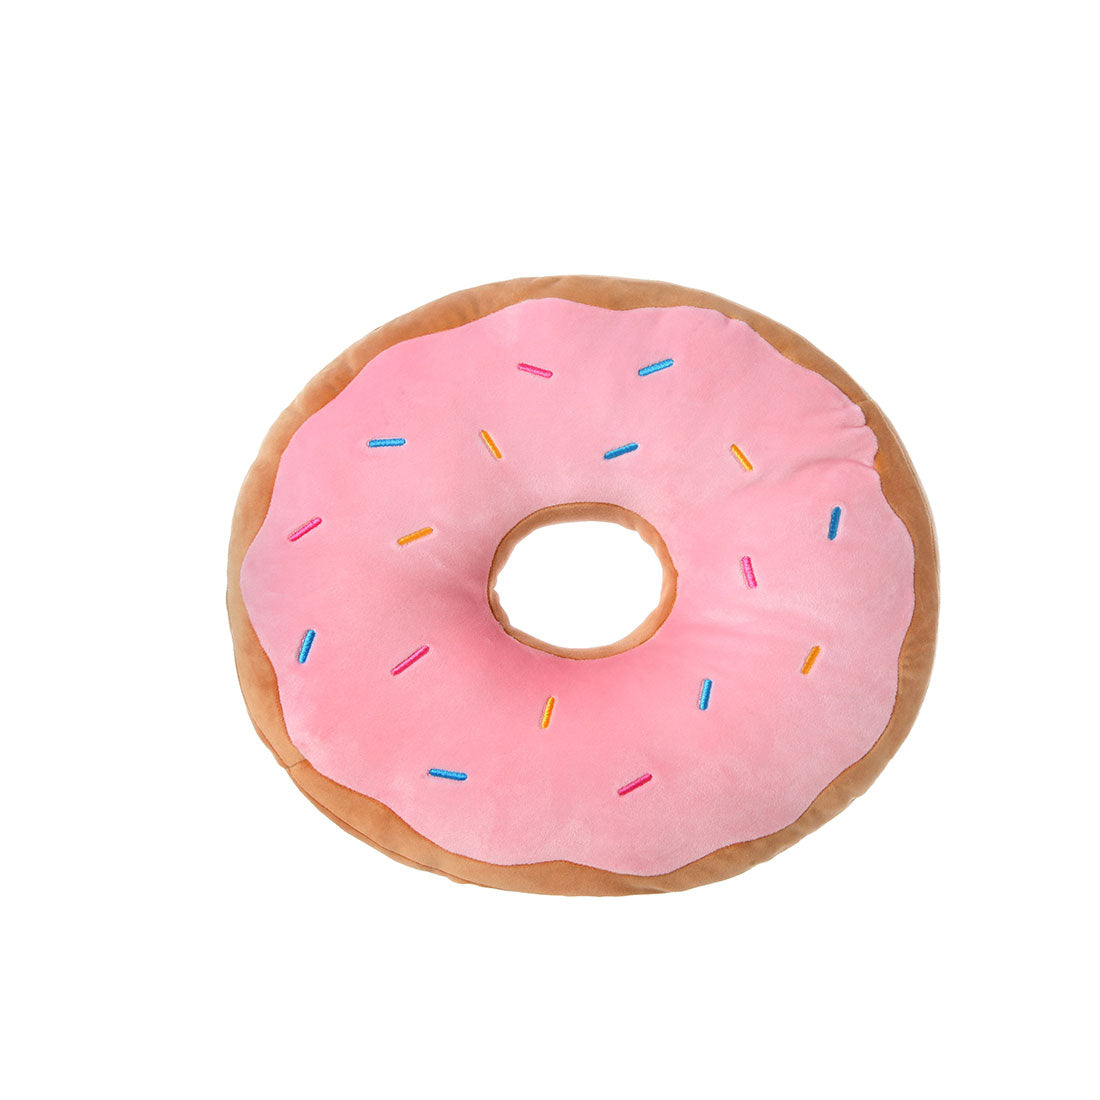 MINISO Classic Donut Cushion (Pink)